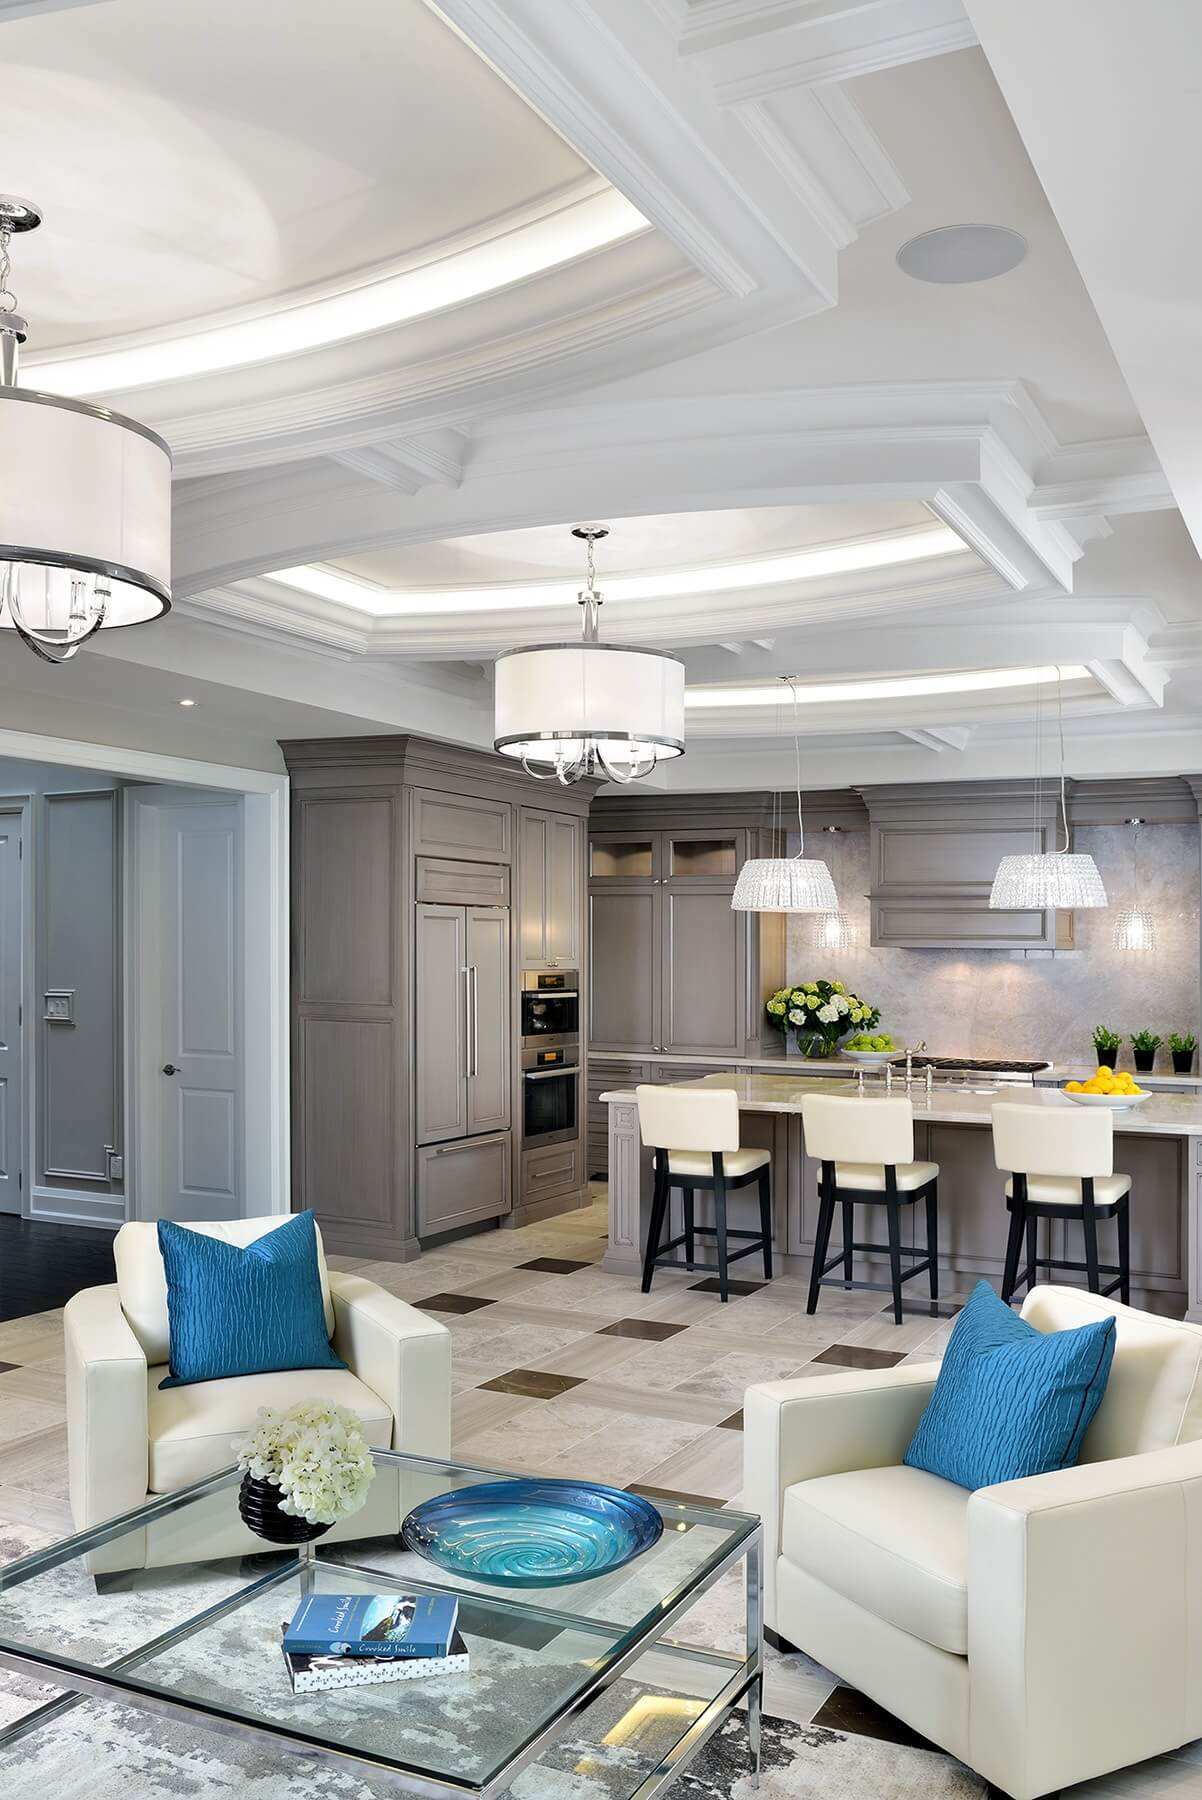 Central open space shares living room and kitchen, with an expanse of tile flooring pairing various shades of marble into an intricate pattern. White leather armchairs hold flashes of bold blue amidst the neutral theme.